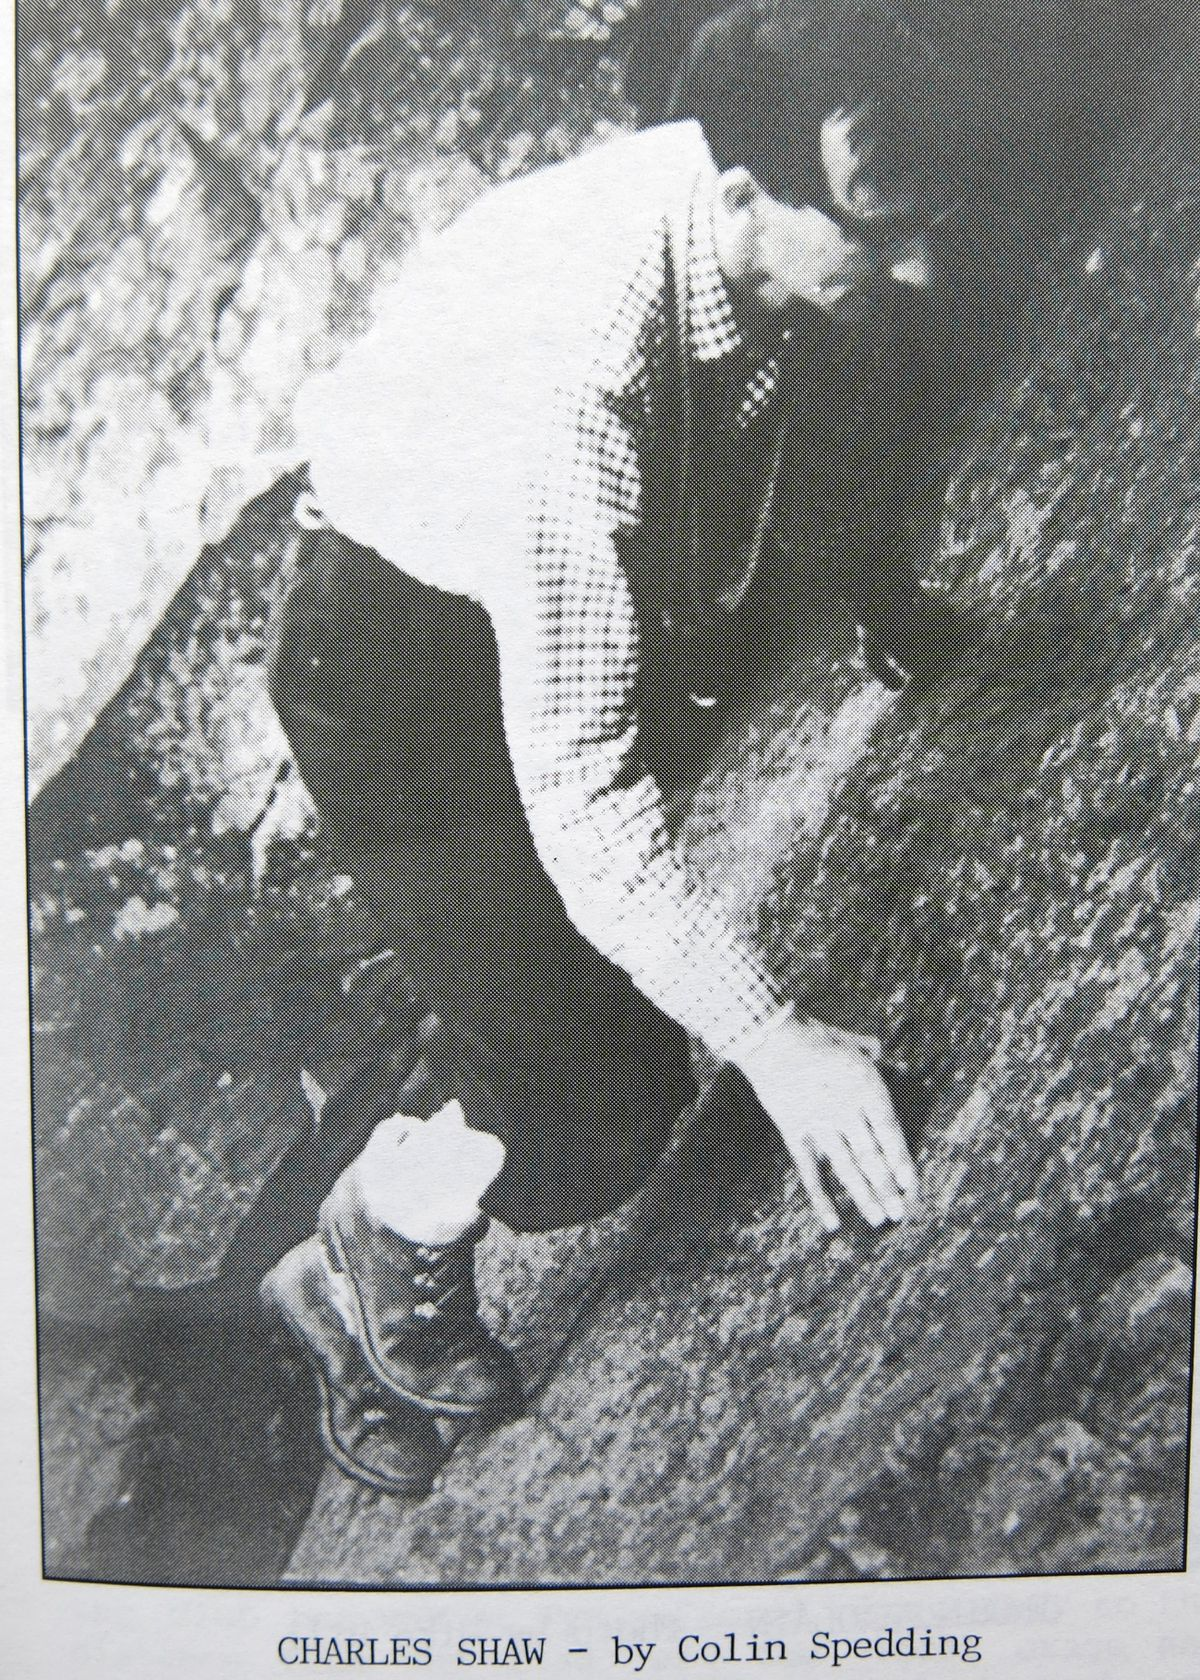 Charles Shaw climbs in the late 1950s